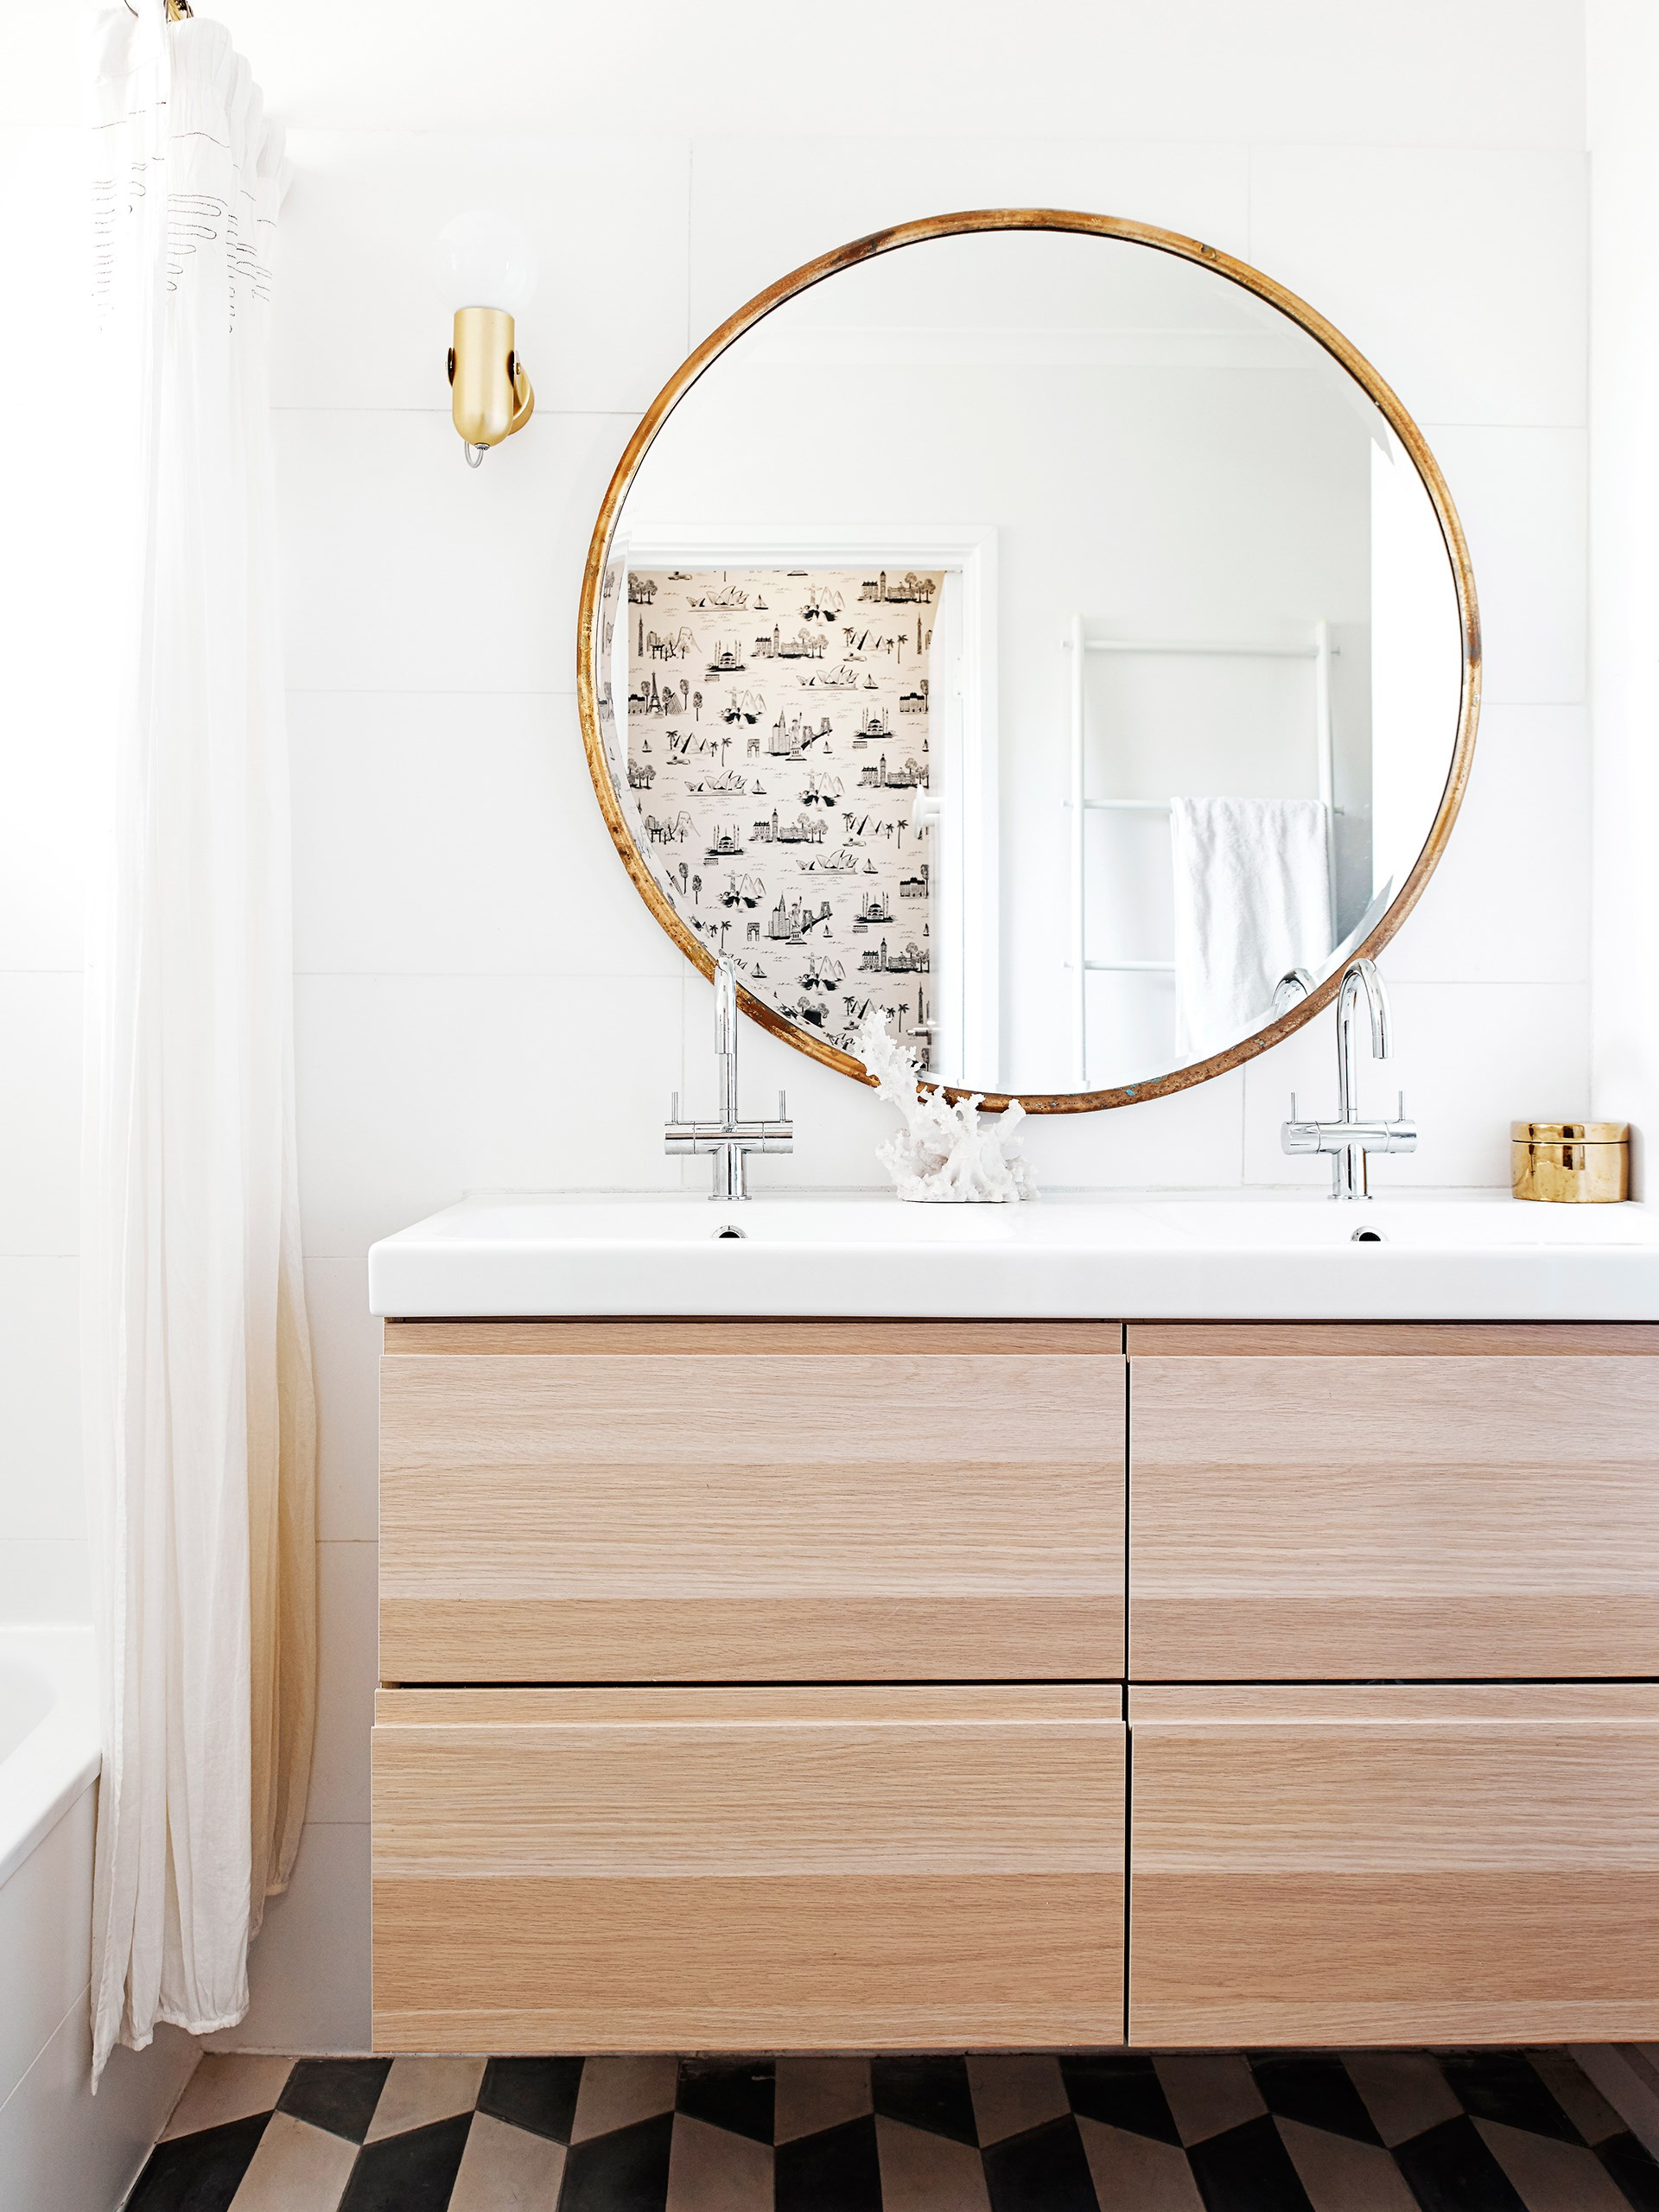 Although space-challenged, a double vanity was a must in the bathroom of this [1970s brick-veneer unit](http://www.homestolove.com.au/interior-designer-lauren-lis-creative-home-renovation-2843). The addition of timber and brass fixtures creates a warm, feminine touch. Photo: Eve Wilson